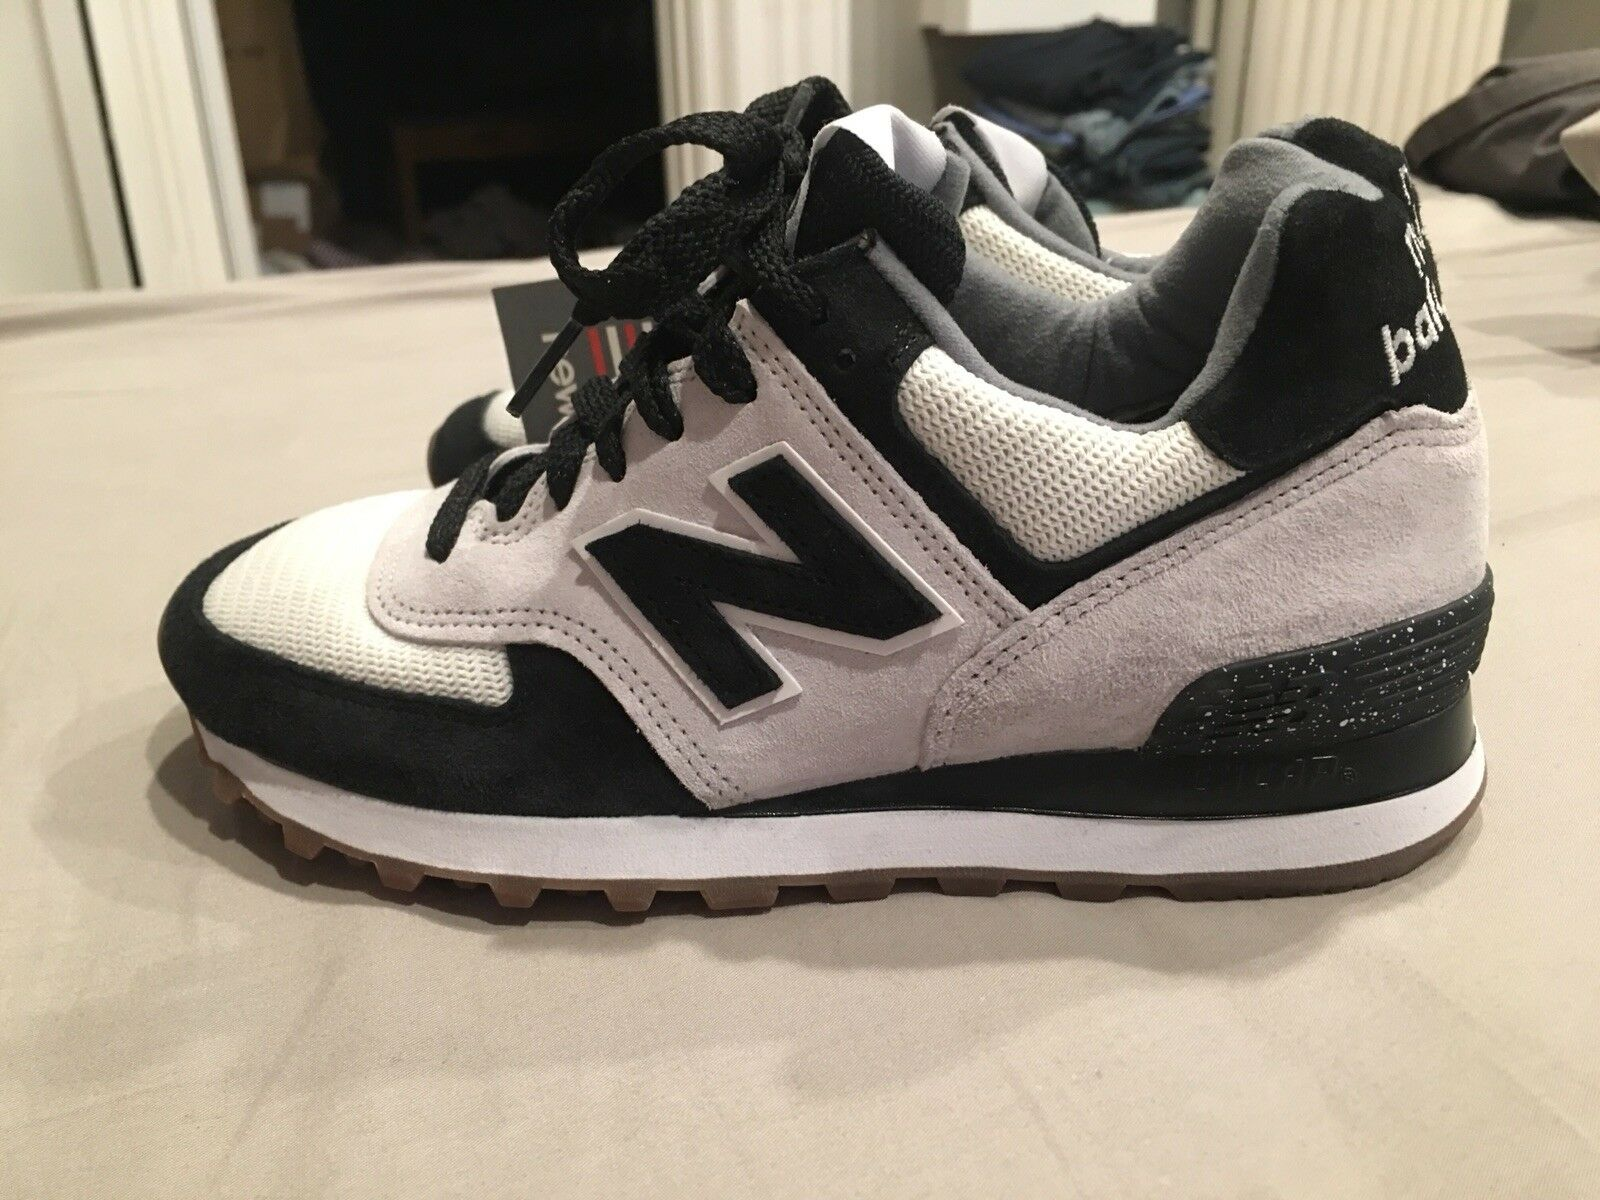 New Balance Women's 574 shoes Sneakers - Size 5.5